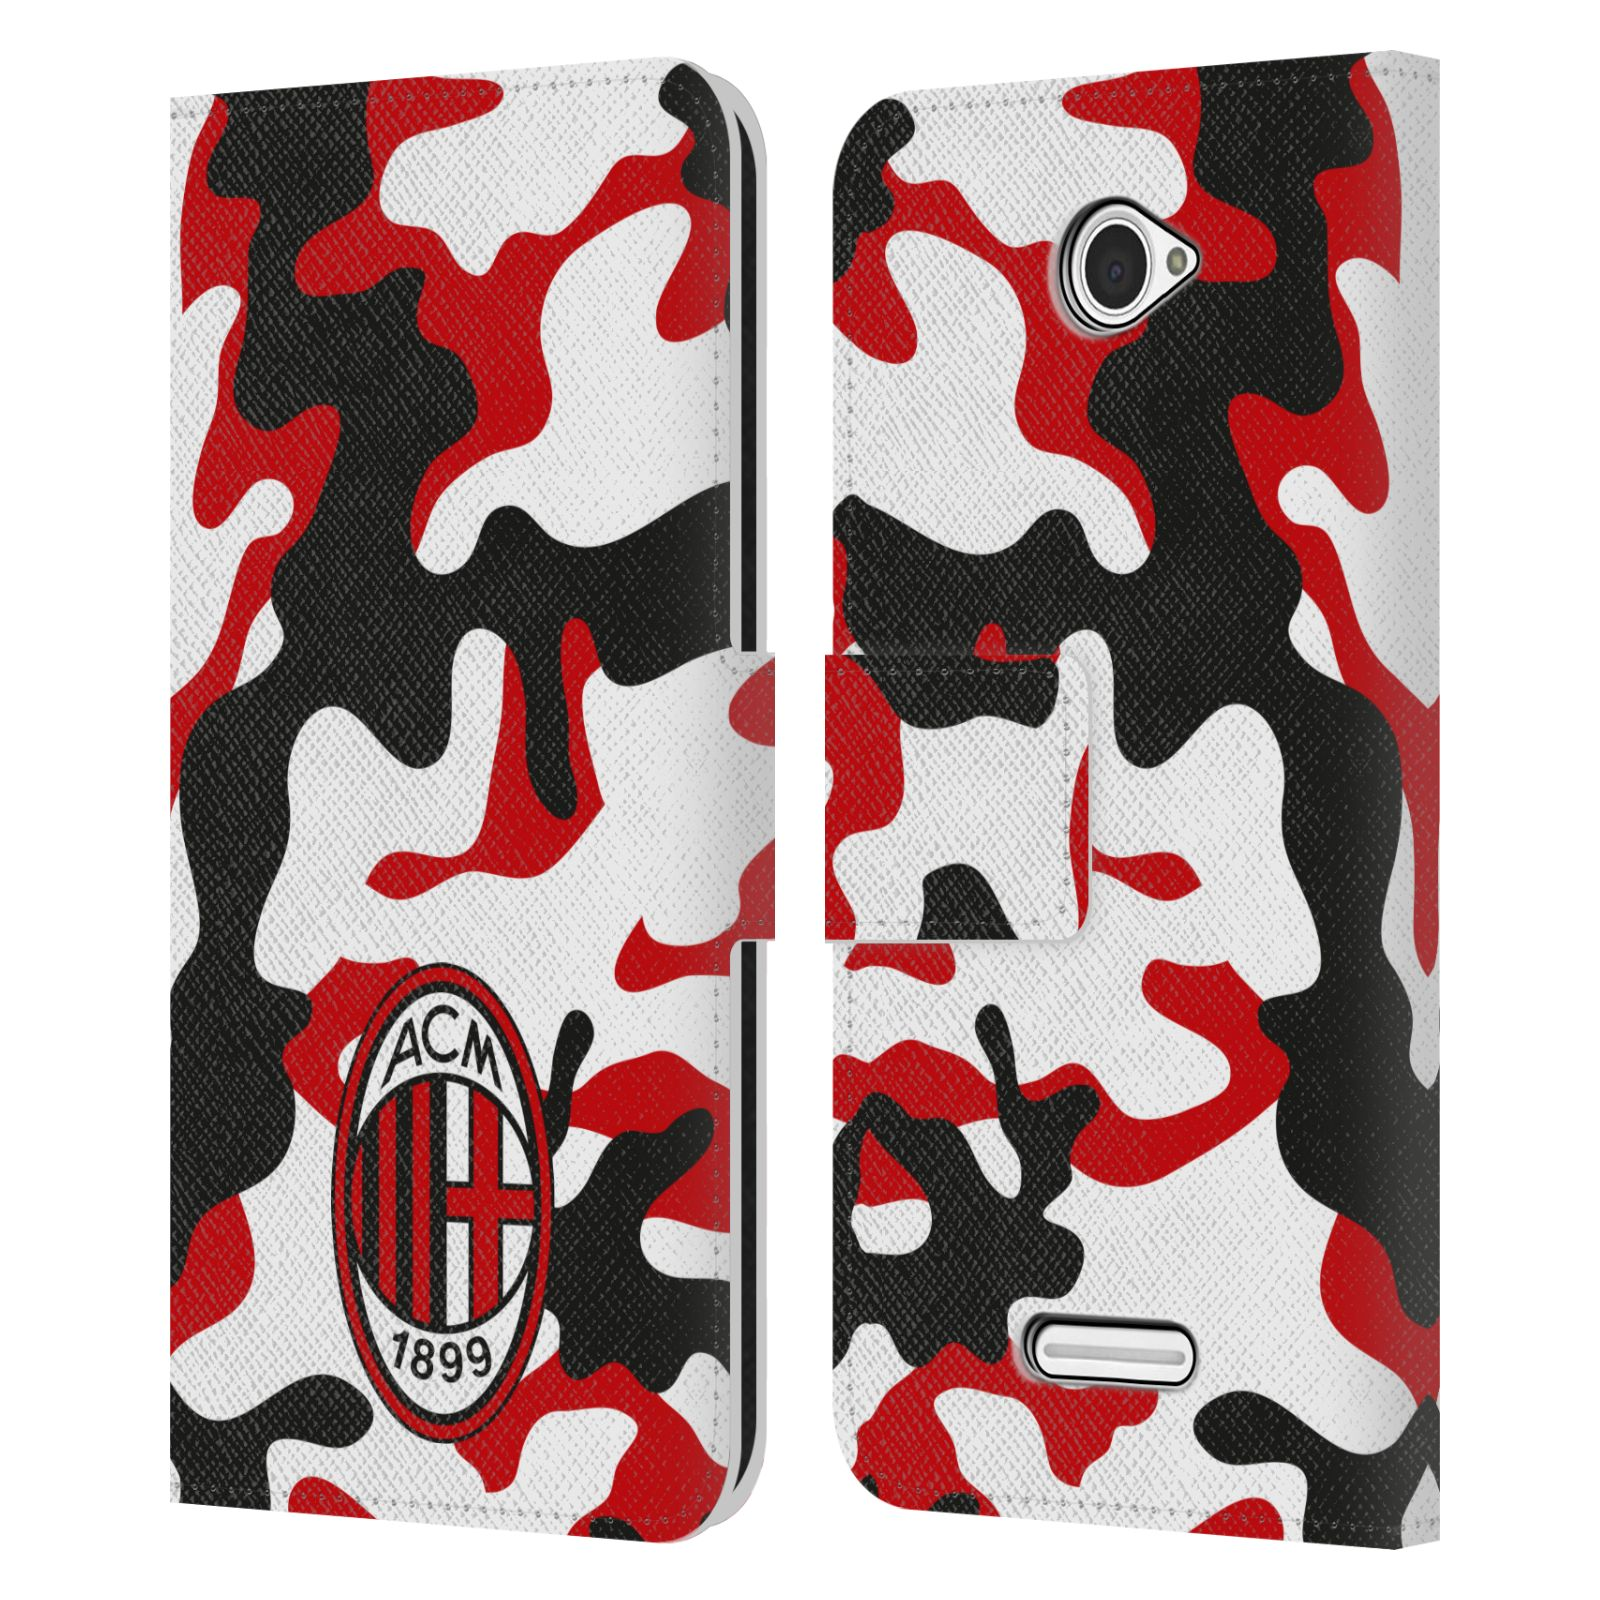 OFFICIAL-AC-MILAN-2018-19-CREST-PATTERNS-LEATHER-BOOK-CASE-FOR-SONY-PHONES-2